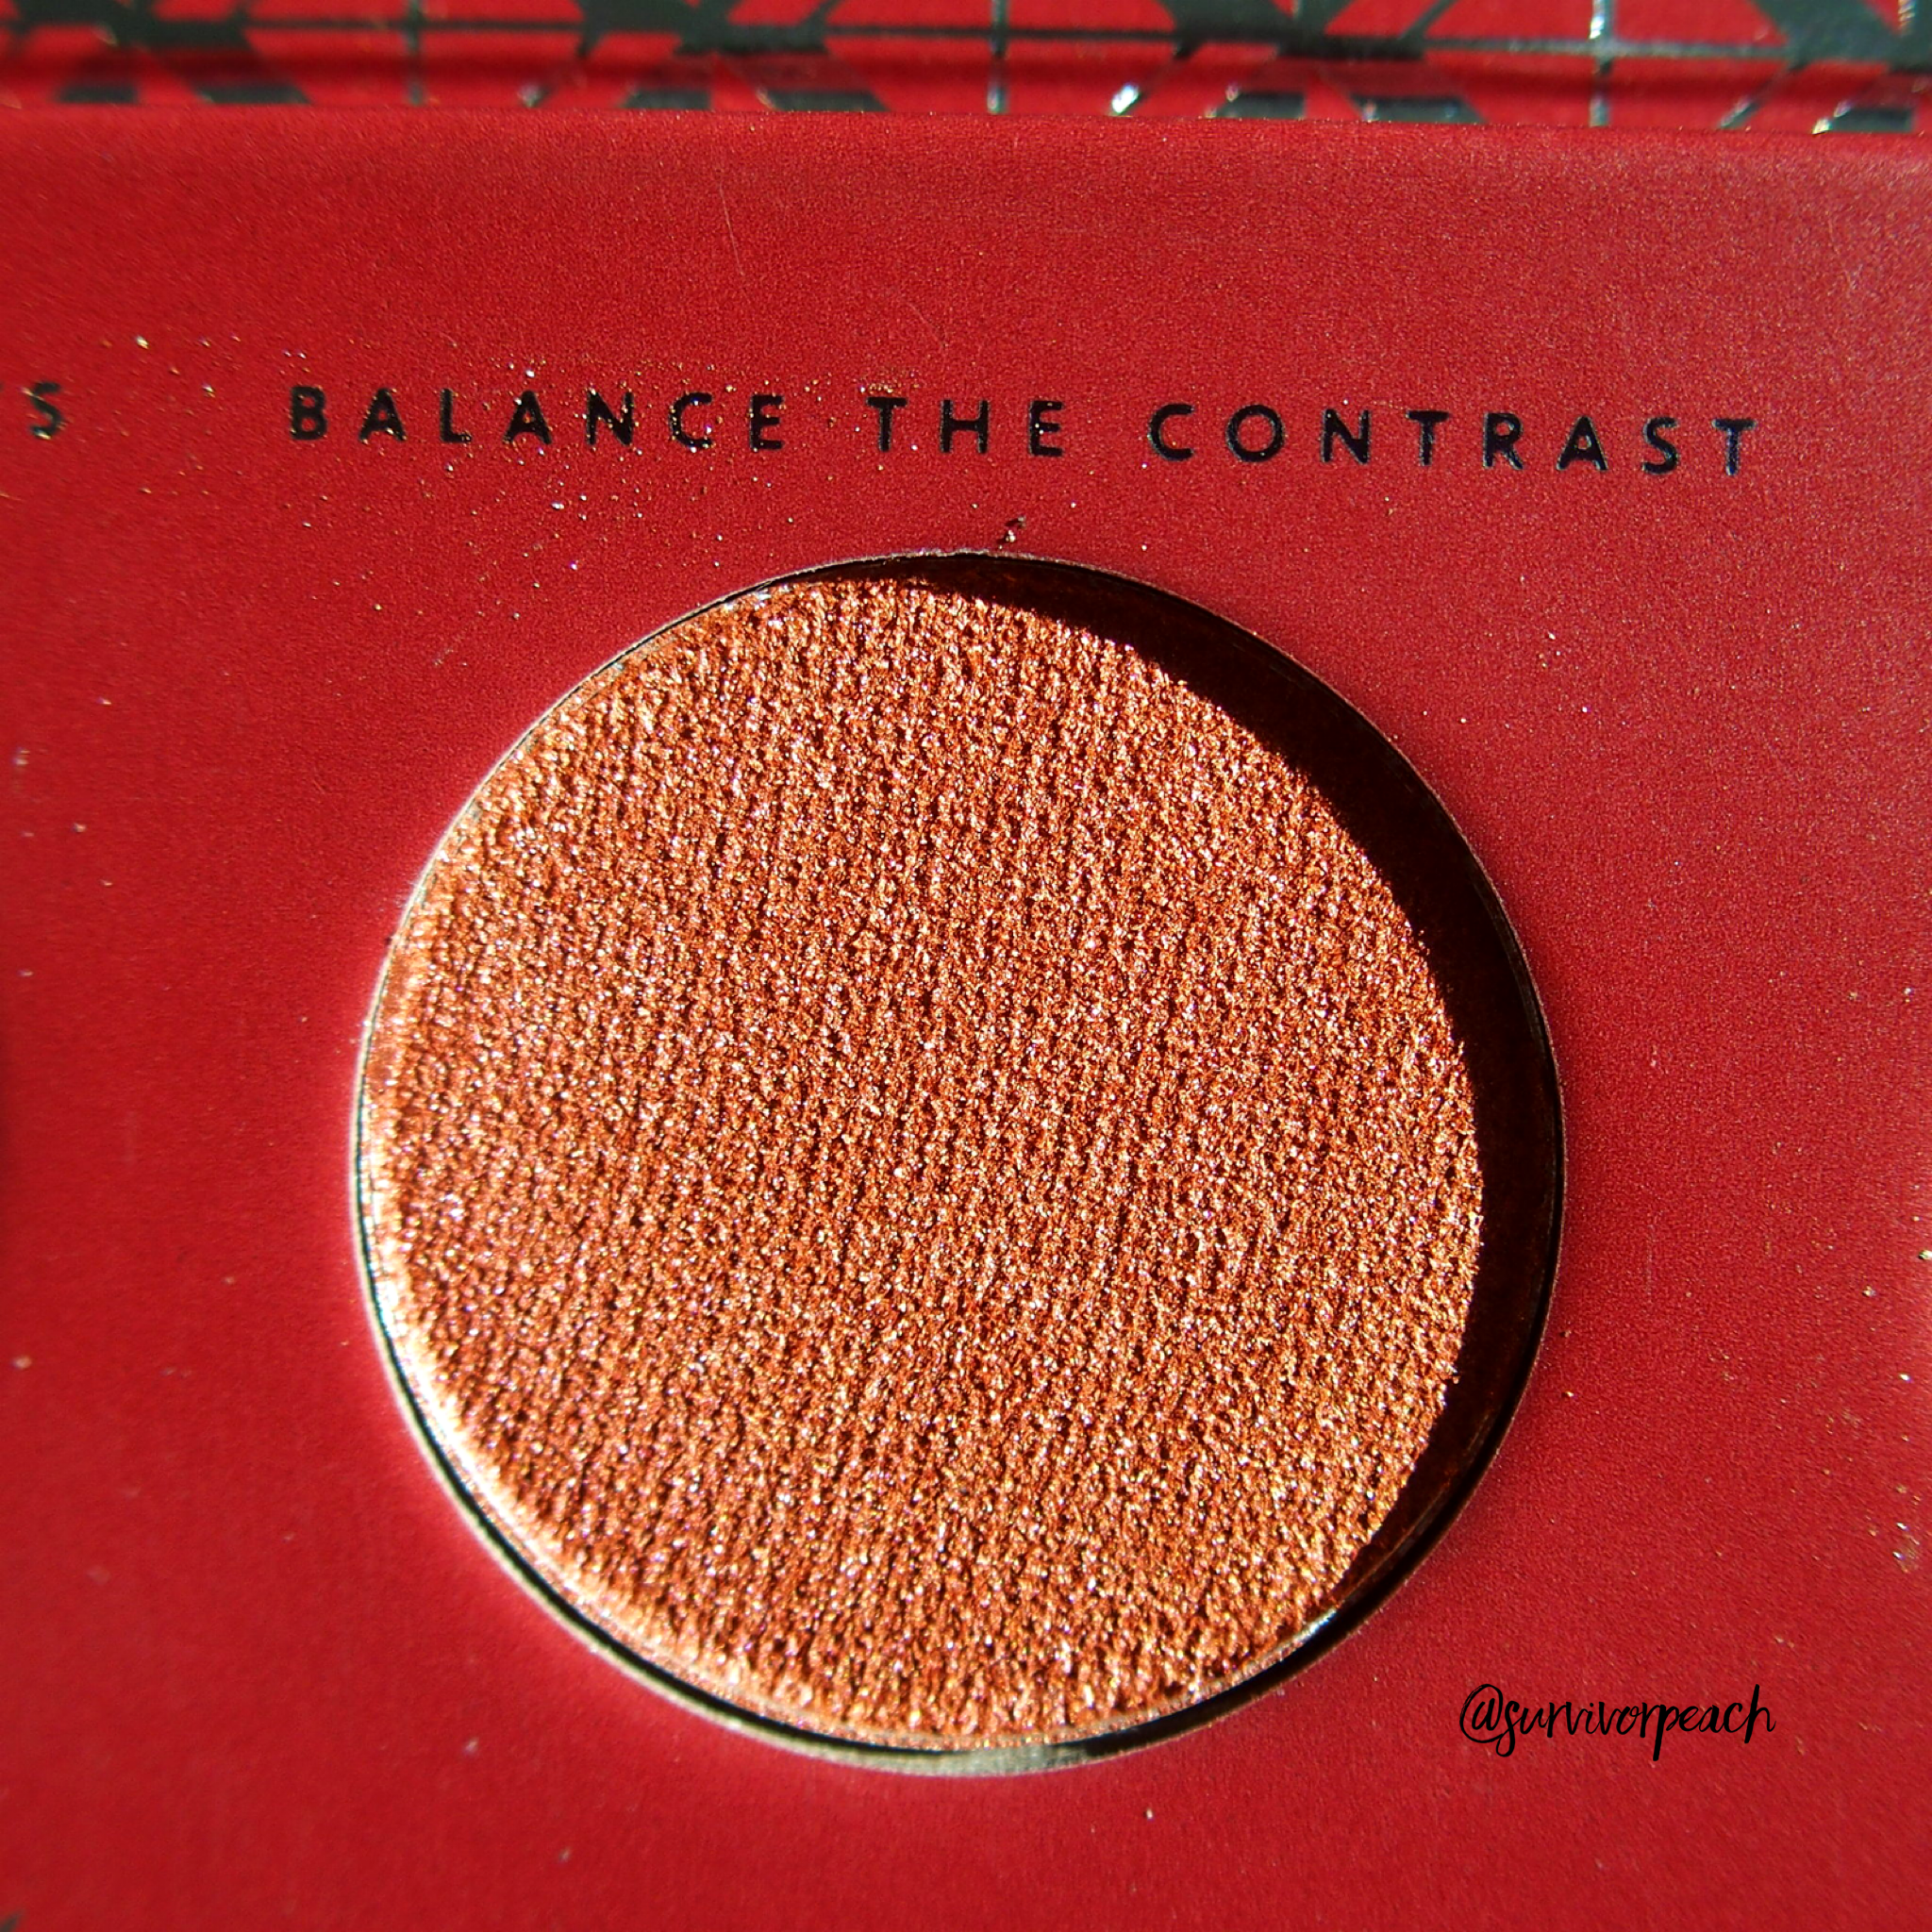 Zoeva Spice of Life Eyeshadow Palette - Balance the Contrast